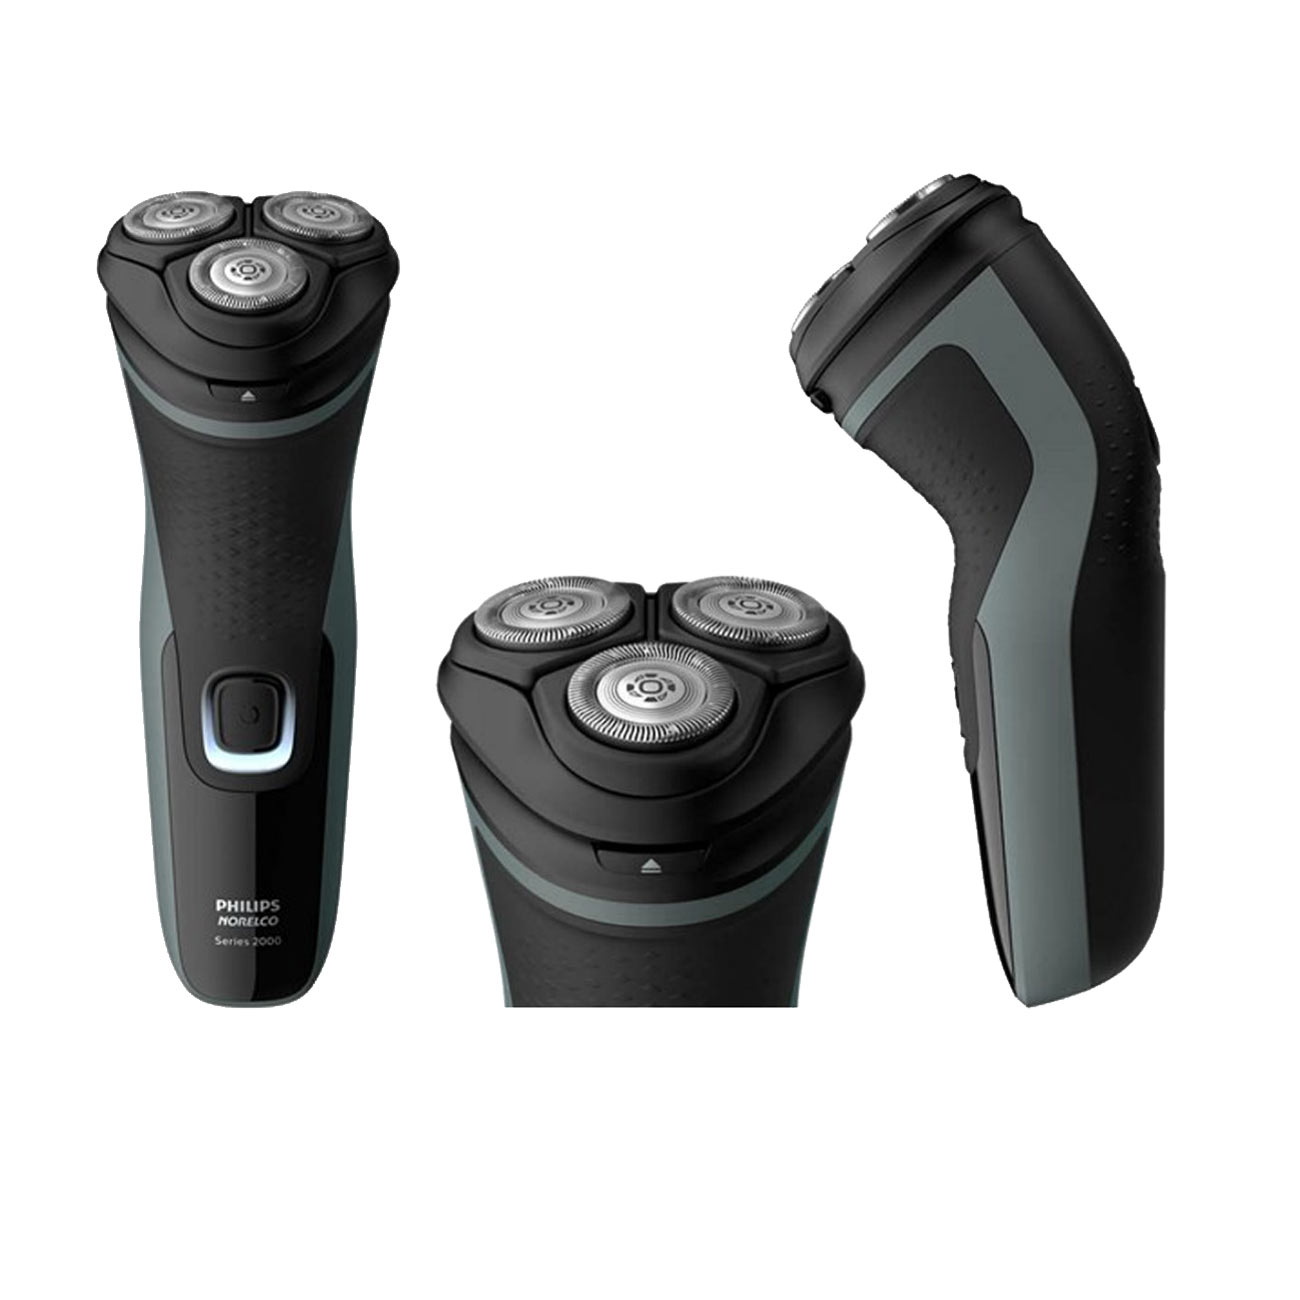 Norelco Mens Electric Razor- Corded-Cordless - New and Improved